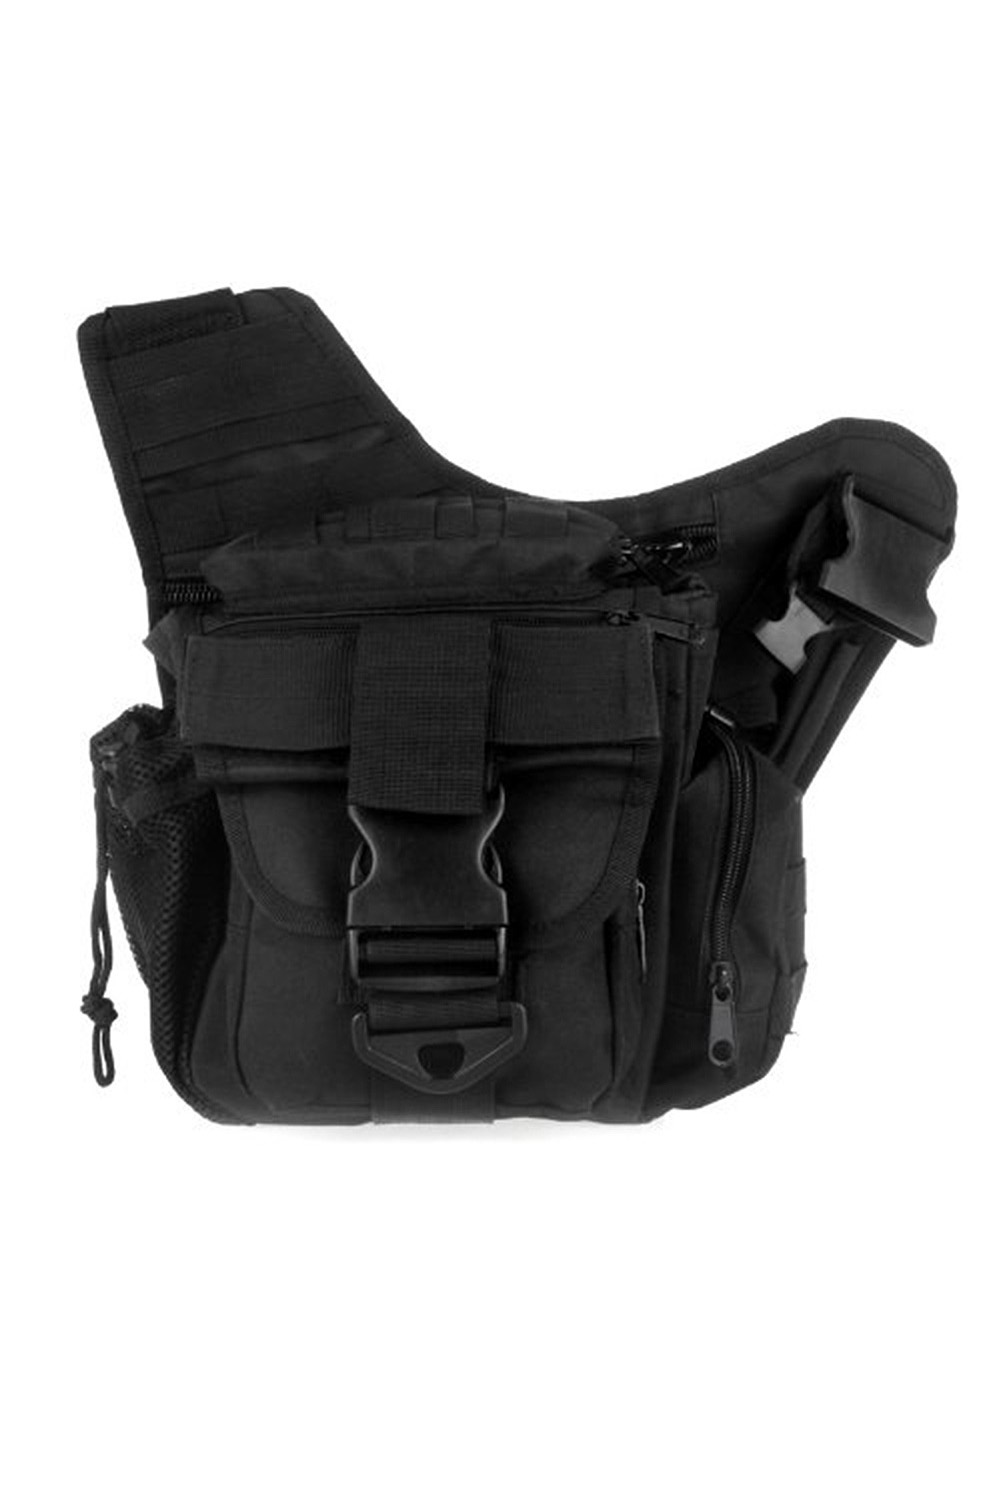 TFTP 600D Nylon Molle Shoulder Strap Bag Military Push Pack Belt Pouch Travel Backpack Camera Money Utility Bag Black